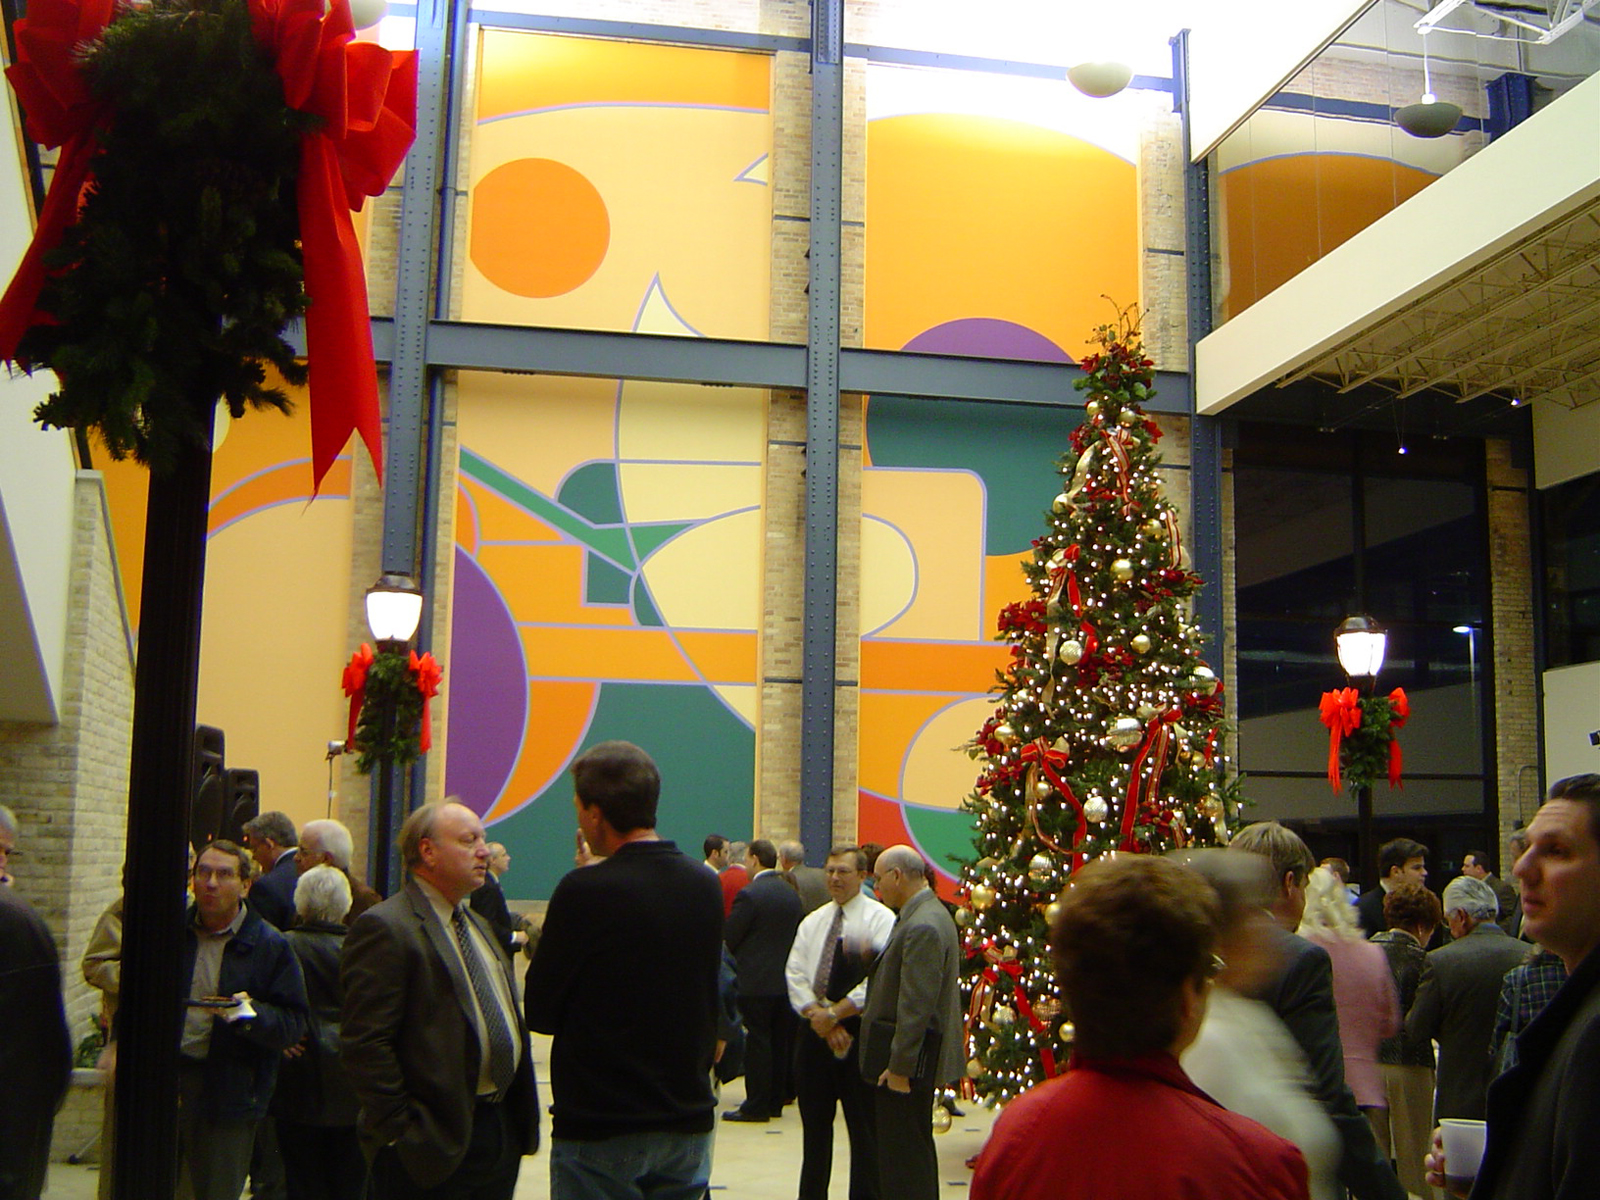 Holiday celebration in the newly rehabilitated Summit Place, originally part of the historic Allis-Chalmers manufacturing complex.